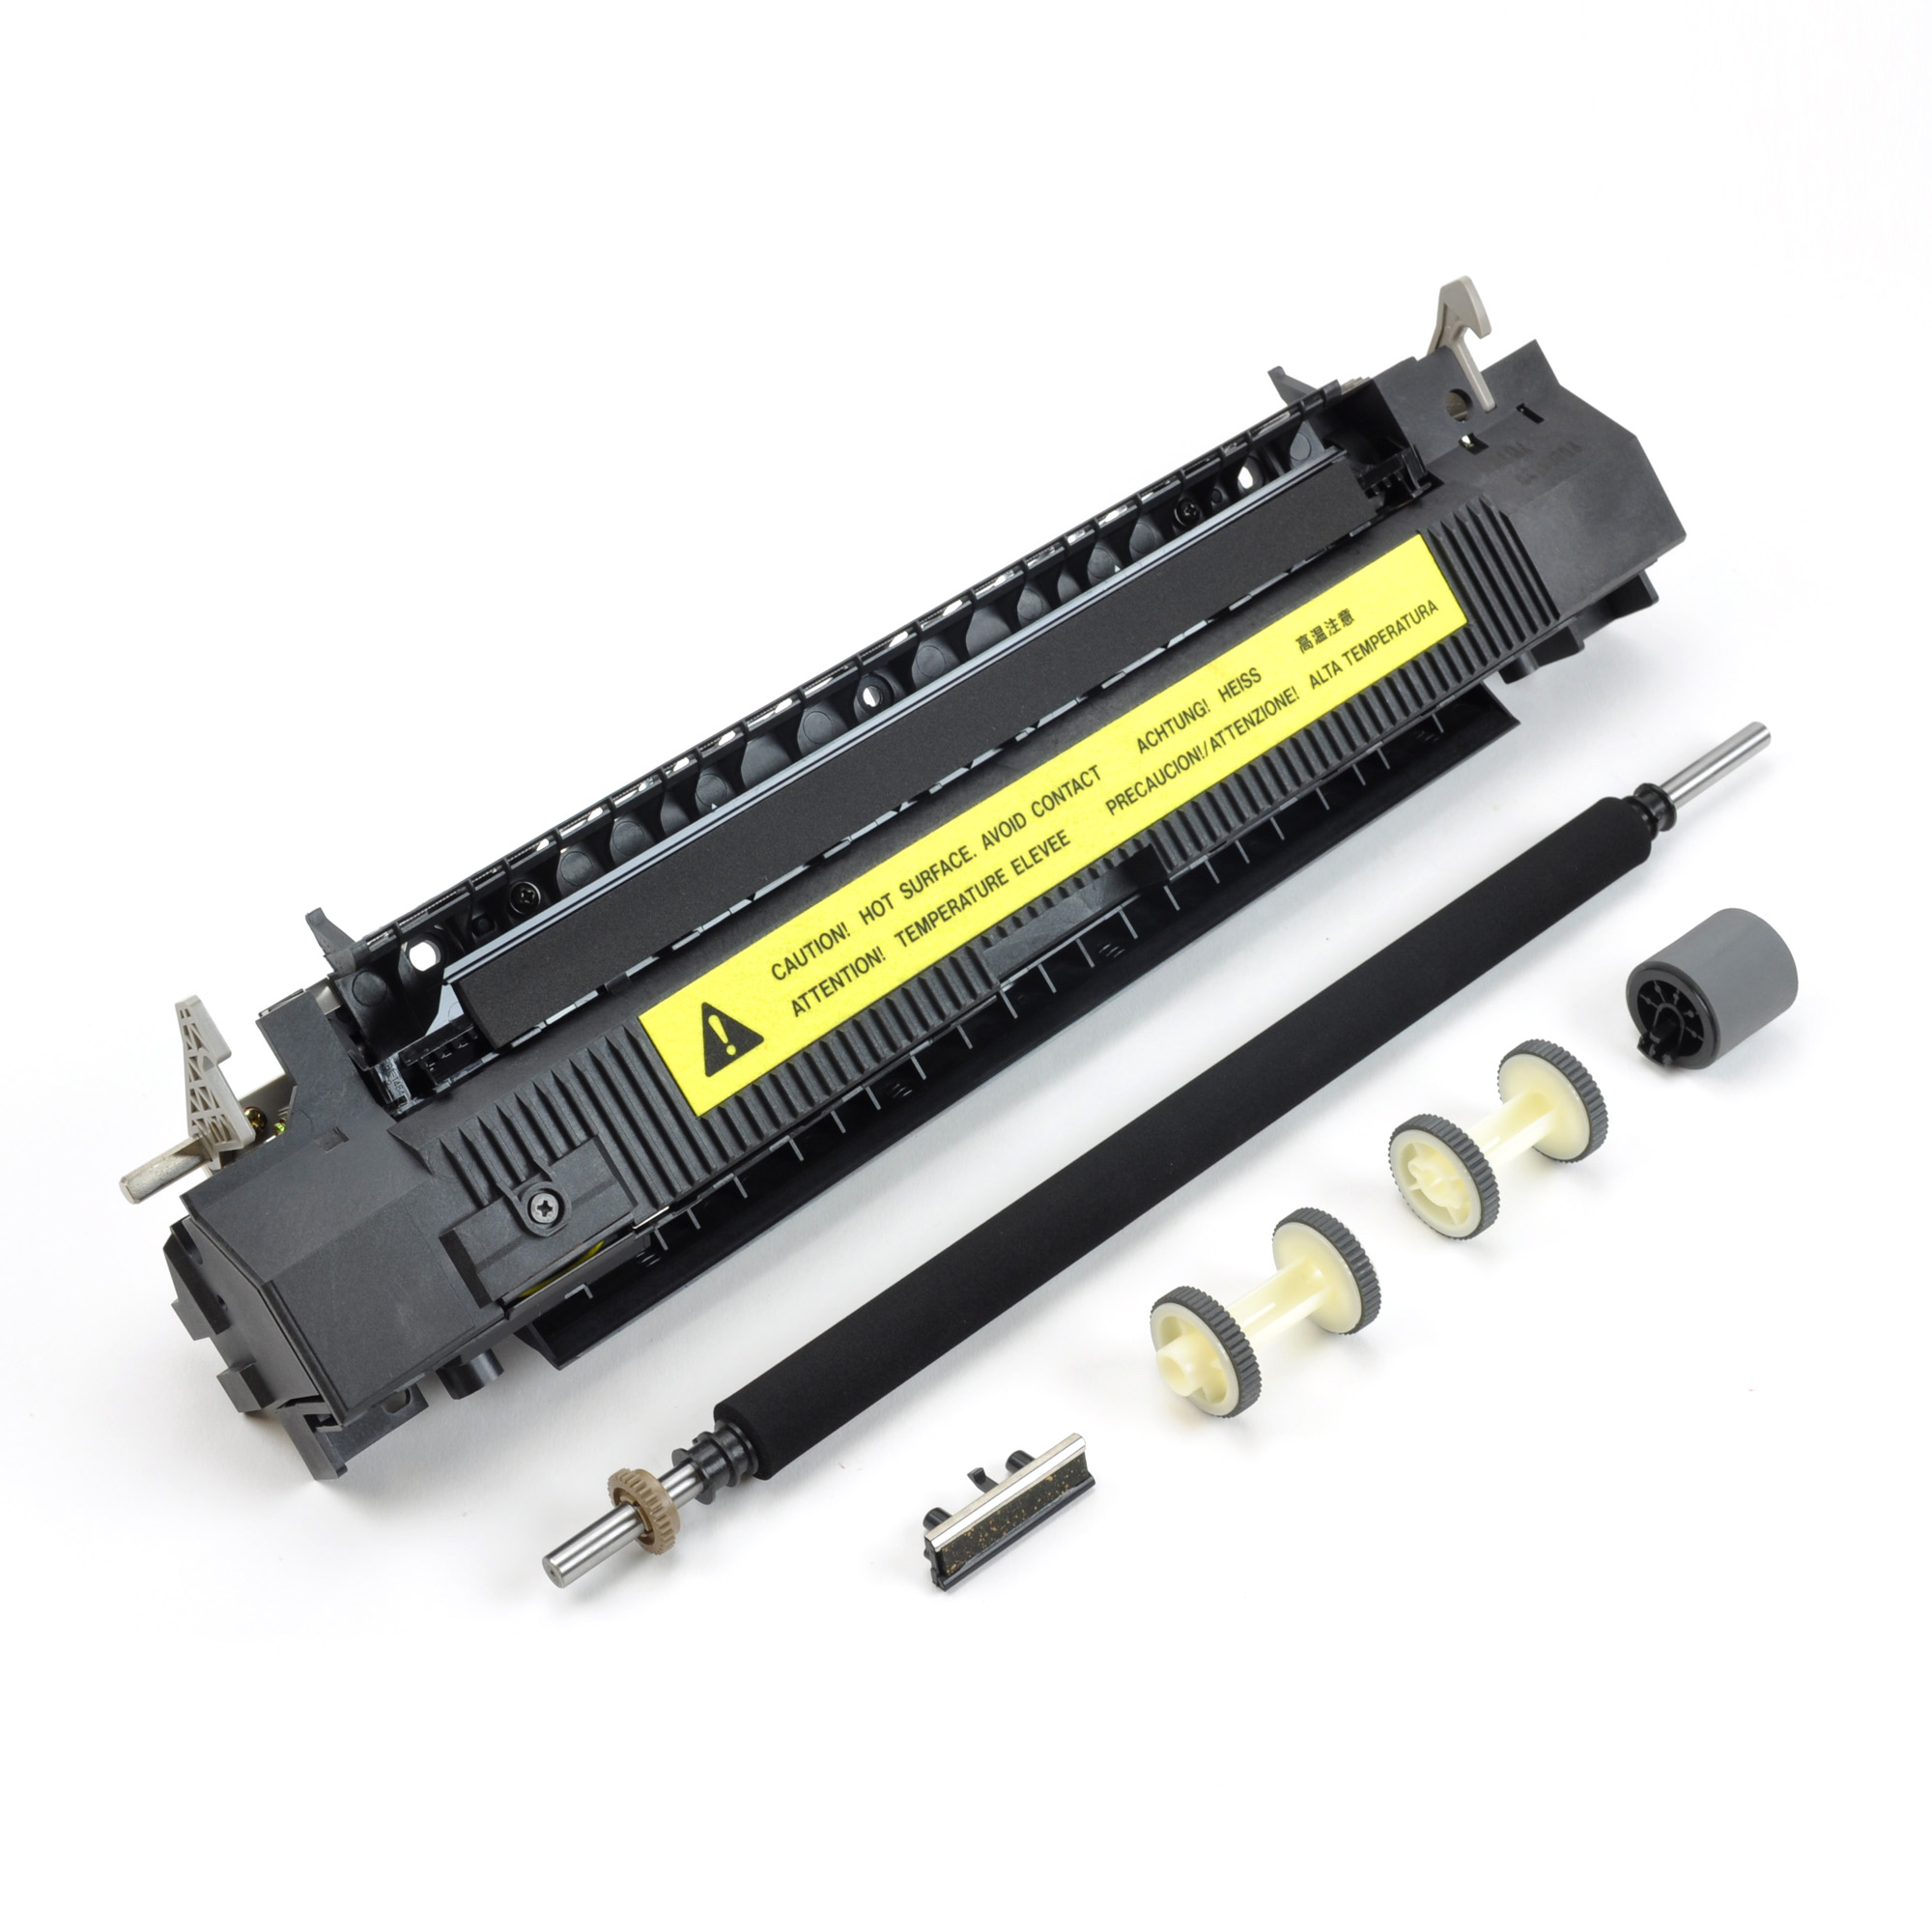 Partsmart Maintenance Kit for HP Laserjet printers: HP4V ...